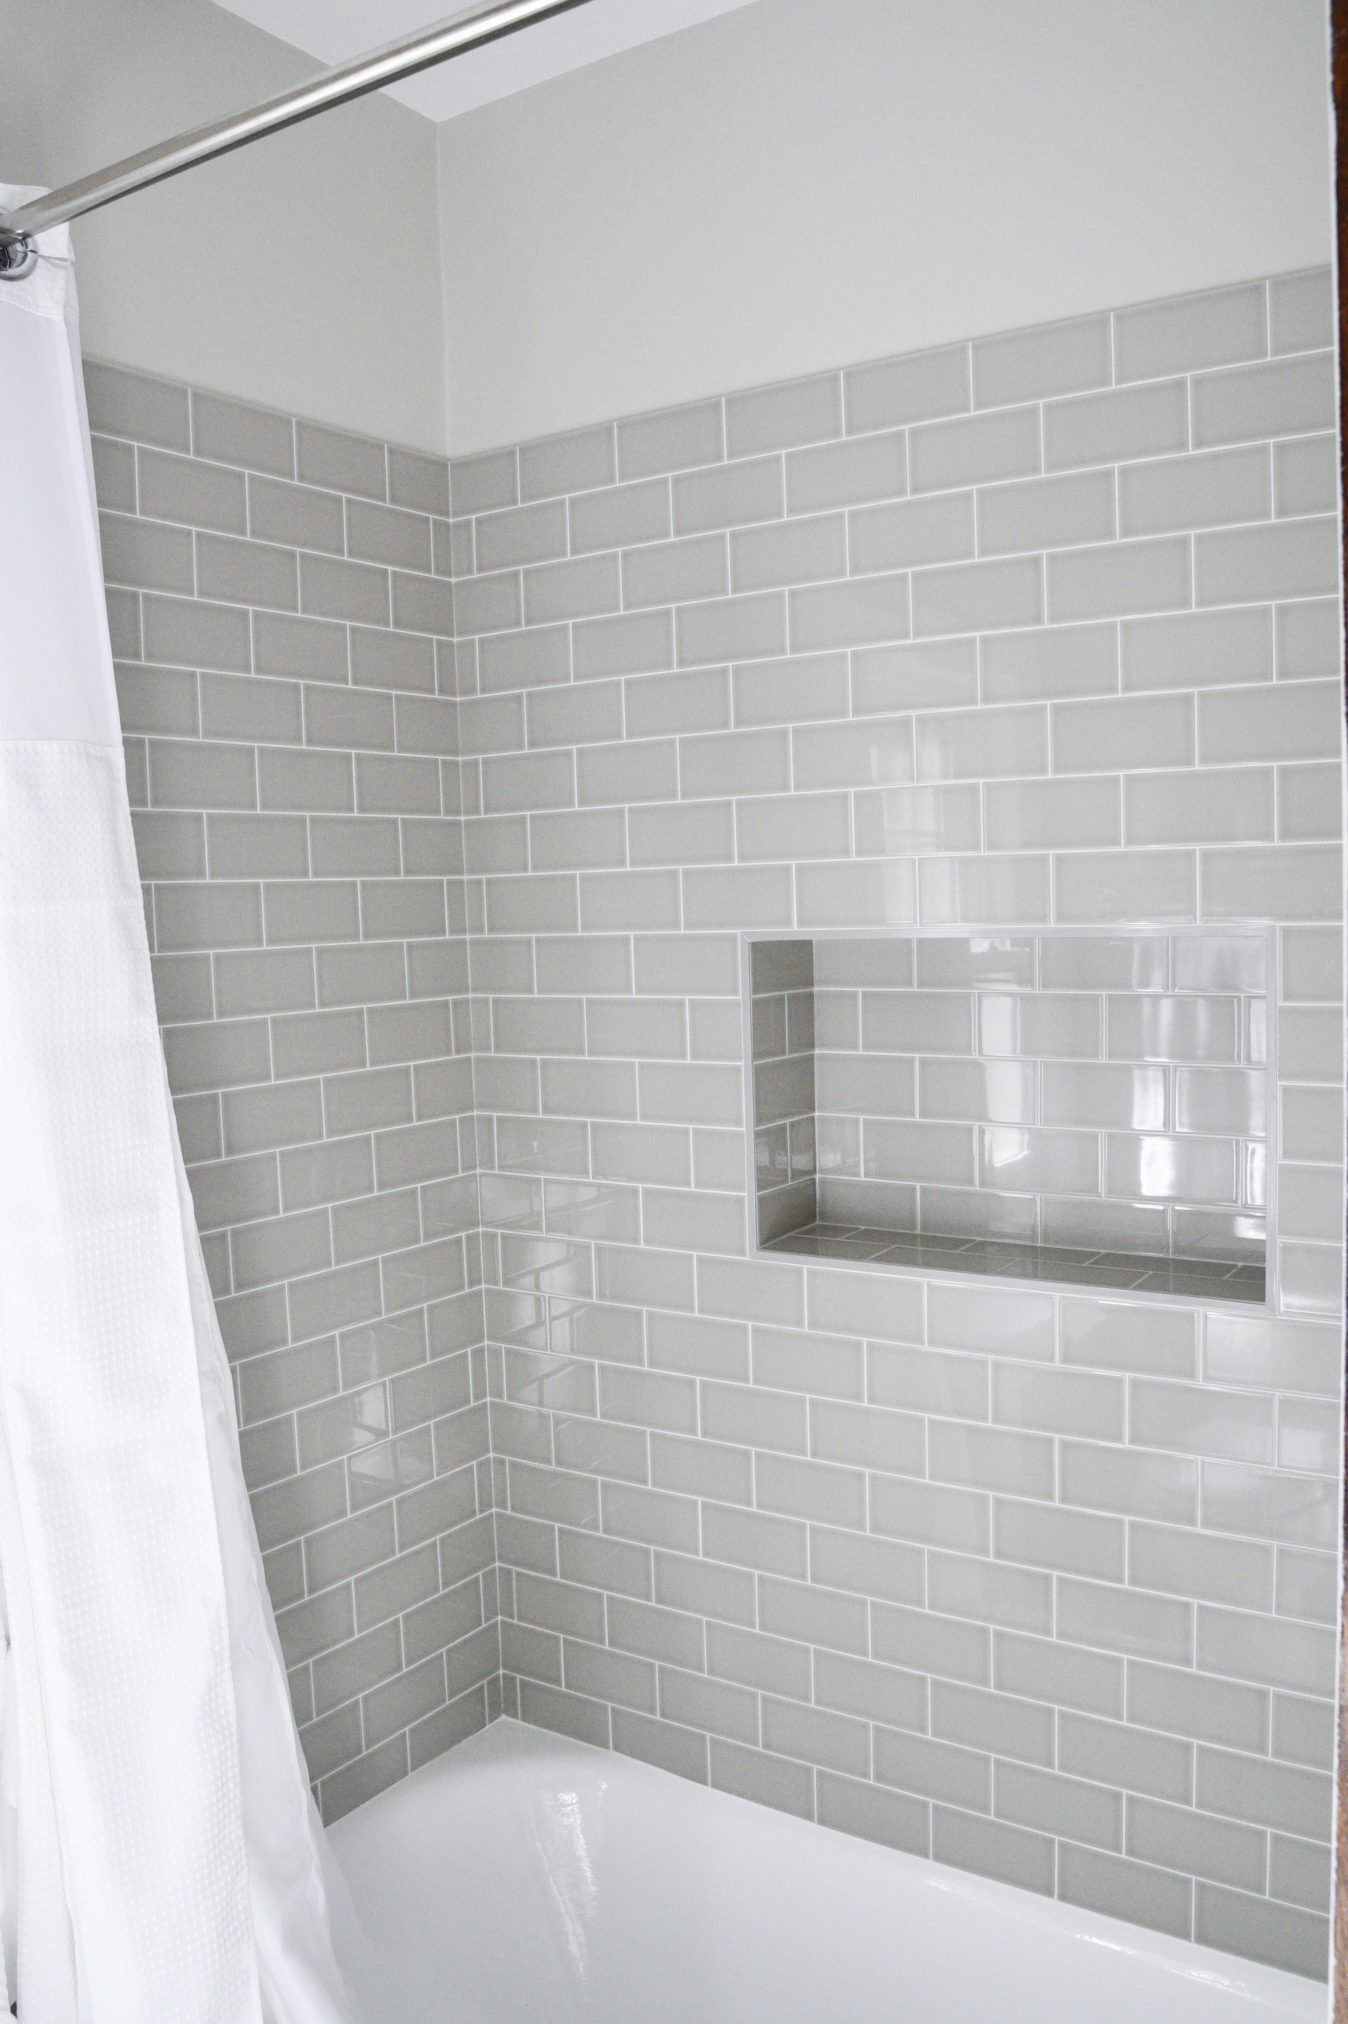 OUR HOME in 2019 For the home bath Pinterest